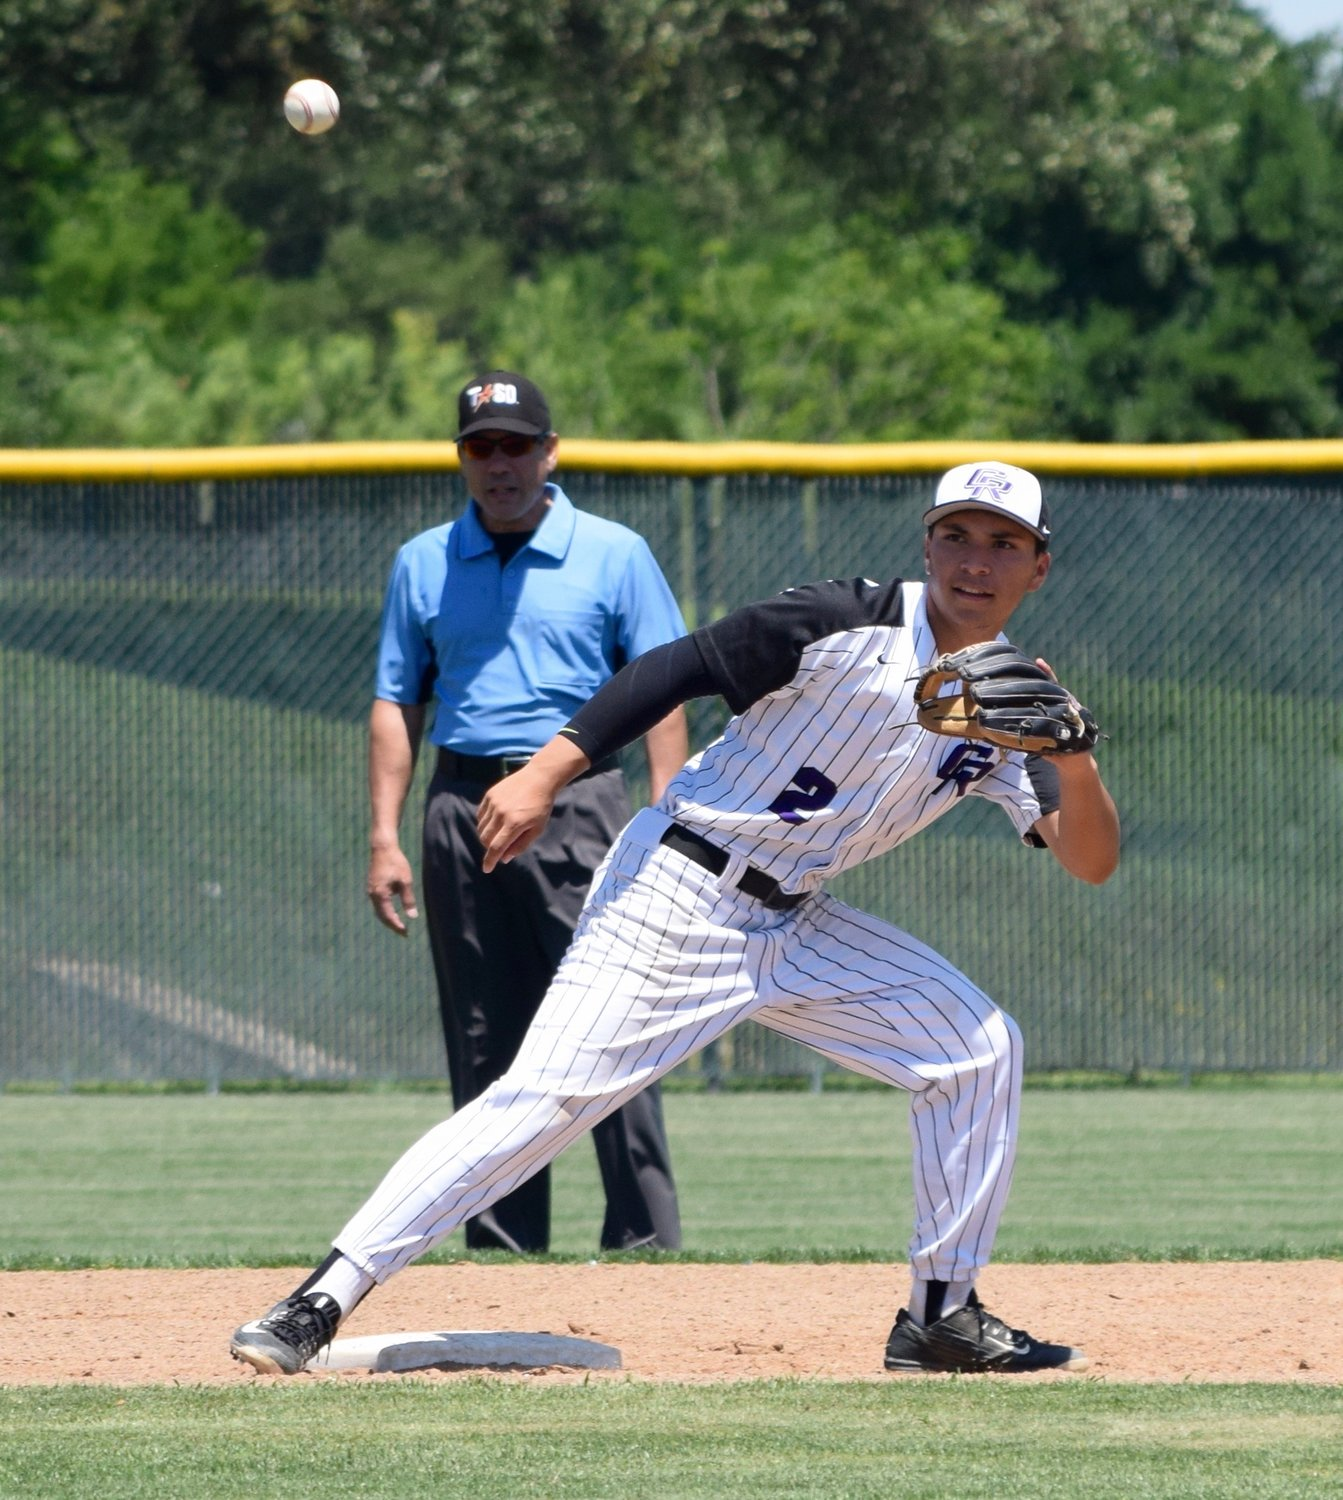 Jett Garcia finished hit a solo home run in the seventh inning, but Cedar Ridge fell to Hendrickson in the District 13-6A play-in tournament final.